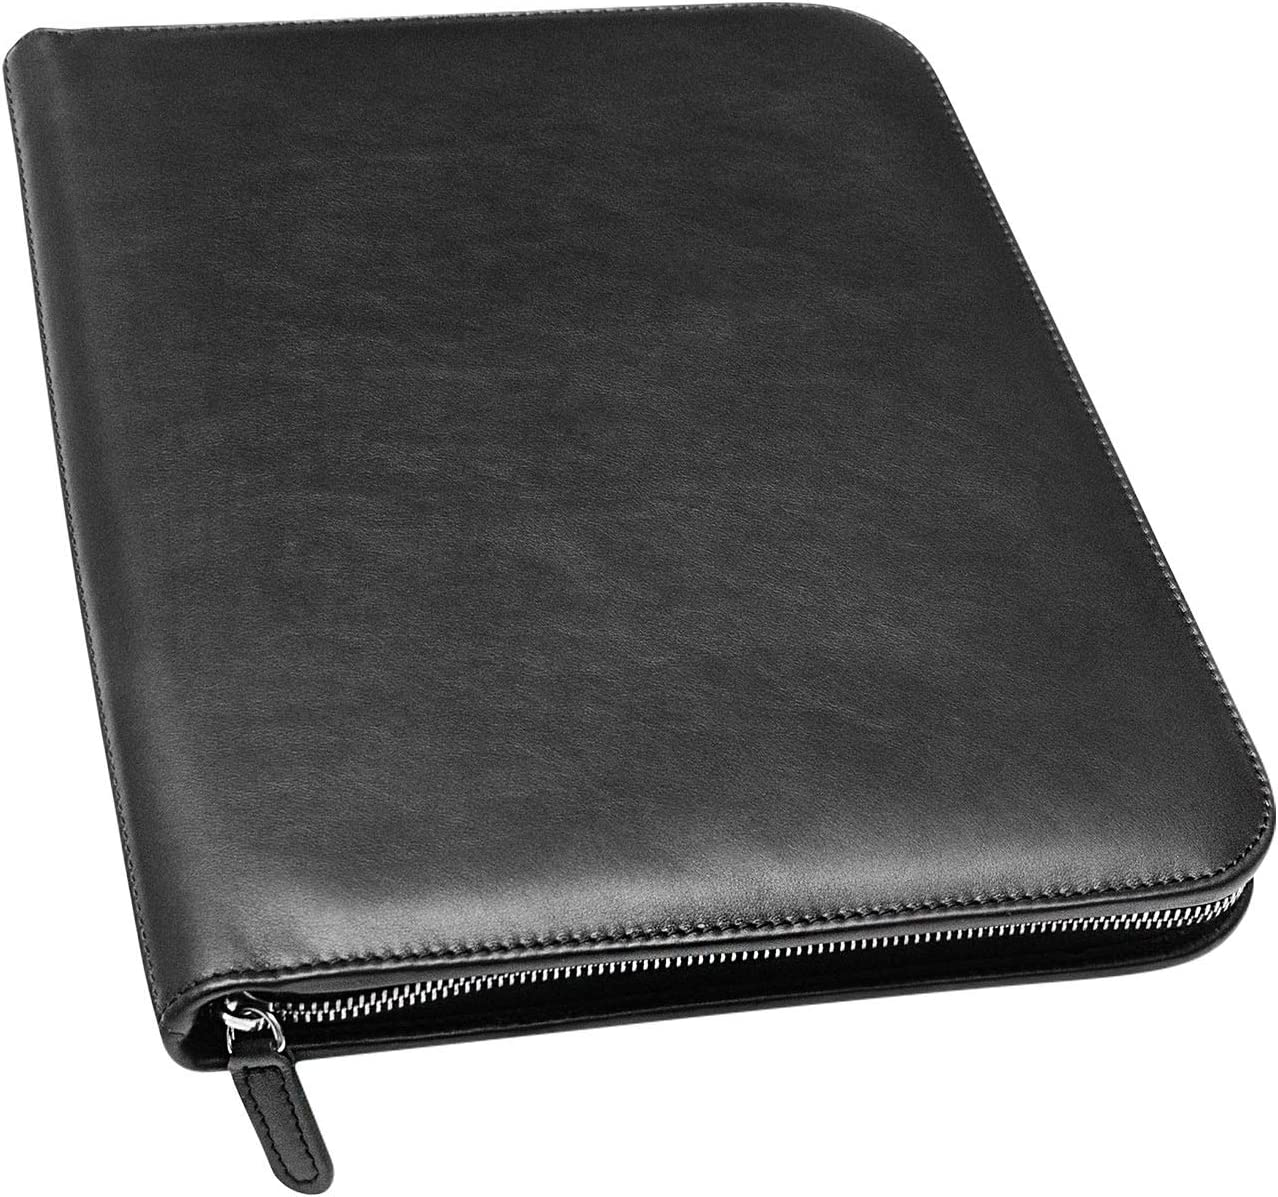 Maruse Personalized Italian Leather Executive Portfolio Padfolio, Folder Organizer with Zip Closure and Writing Pad, Handmade in Italy, Custom Black